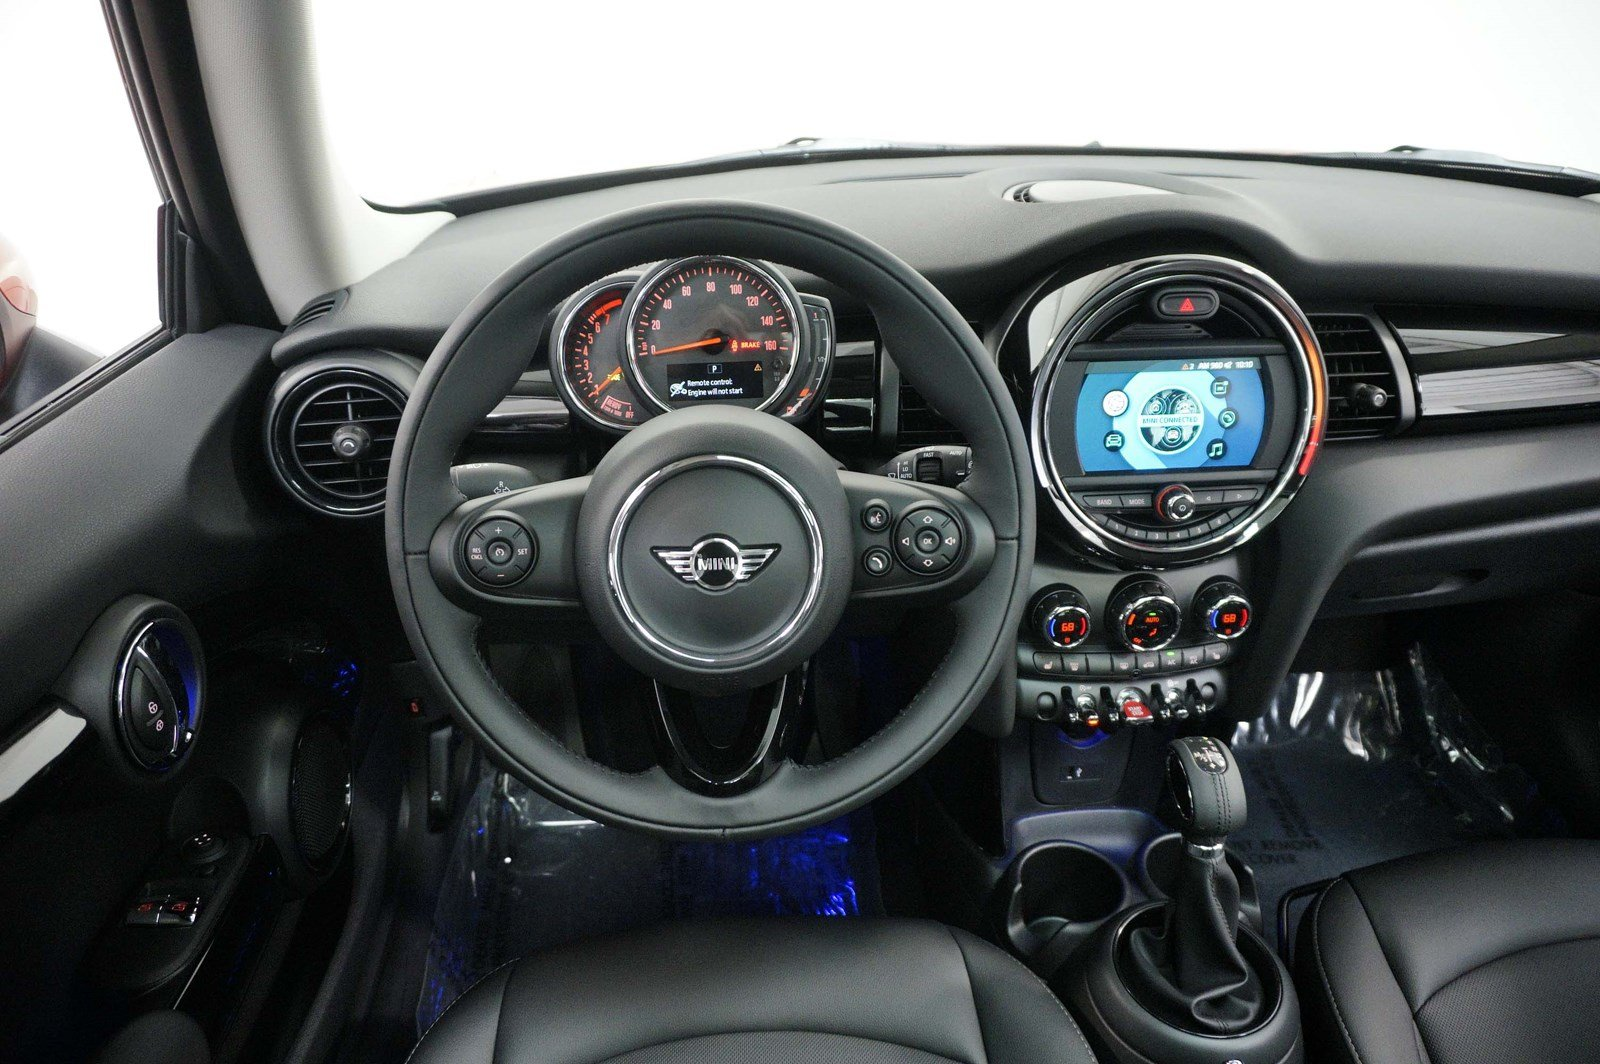 mini cooper interior lights wont turn off. Black Bedroom Furniture Sets. Home Design Ideas